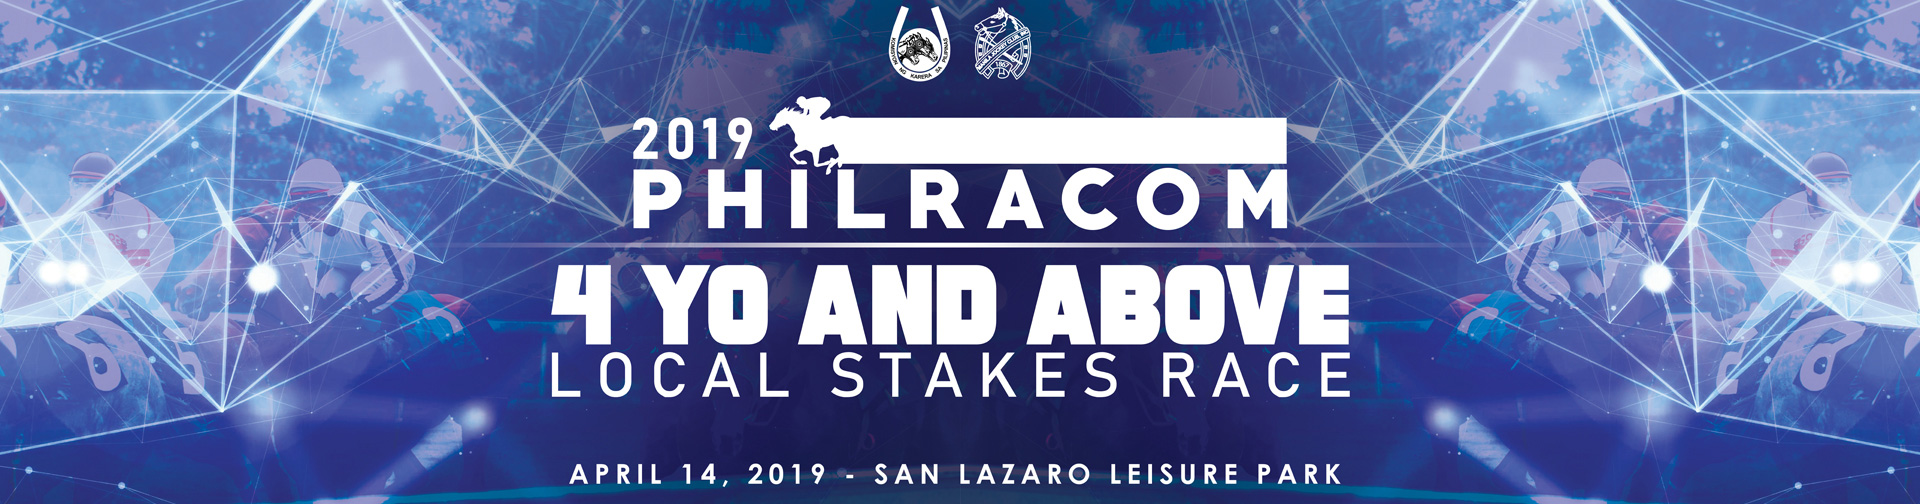 2019 PHILRACOM 4YO & ABOVE